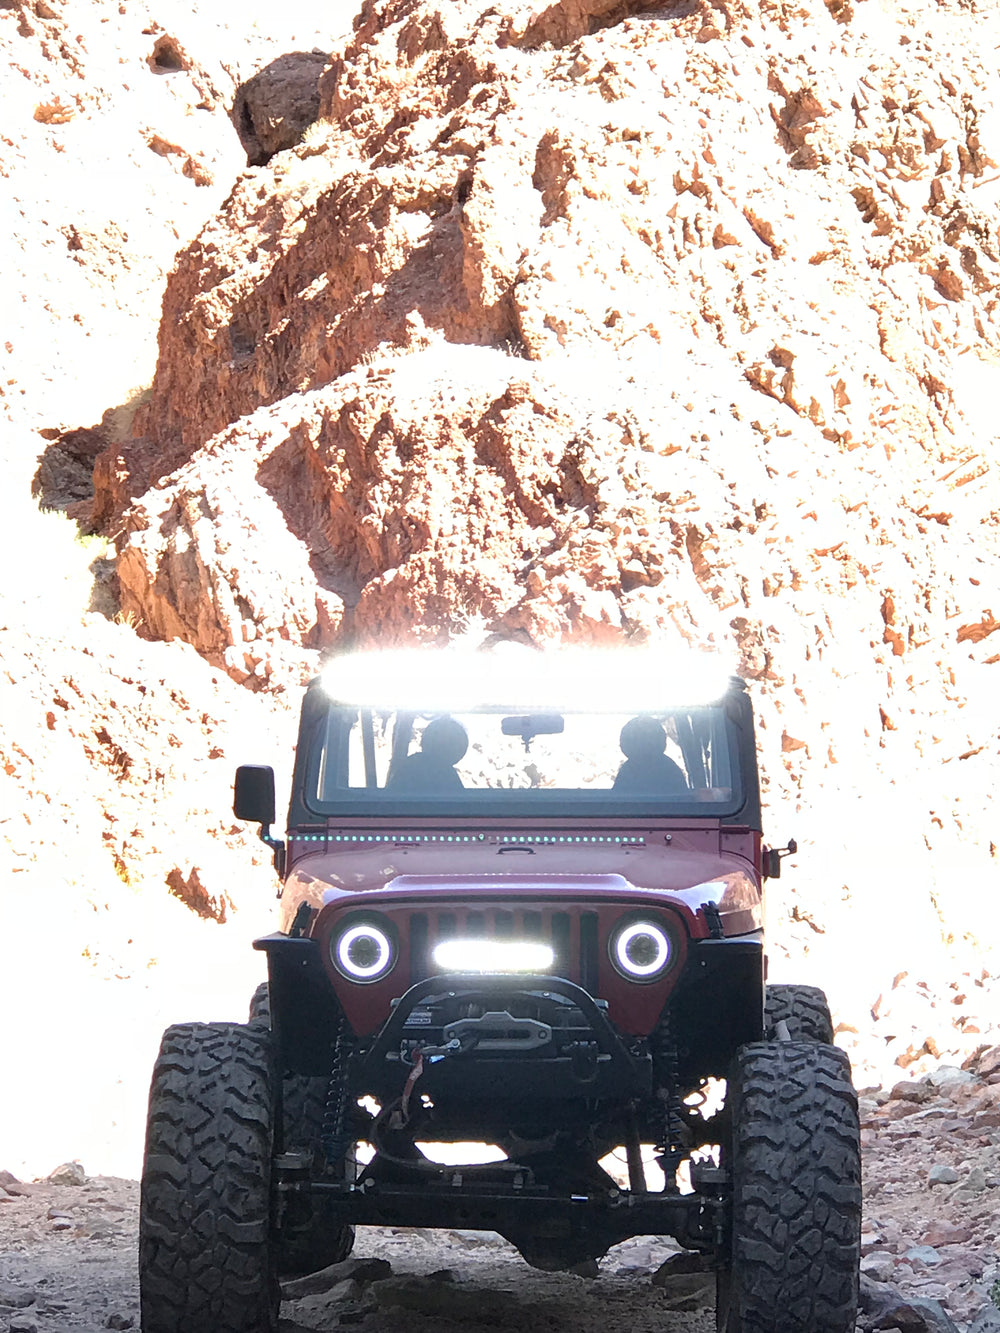 DUAL SLIM SERIES Light Bars